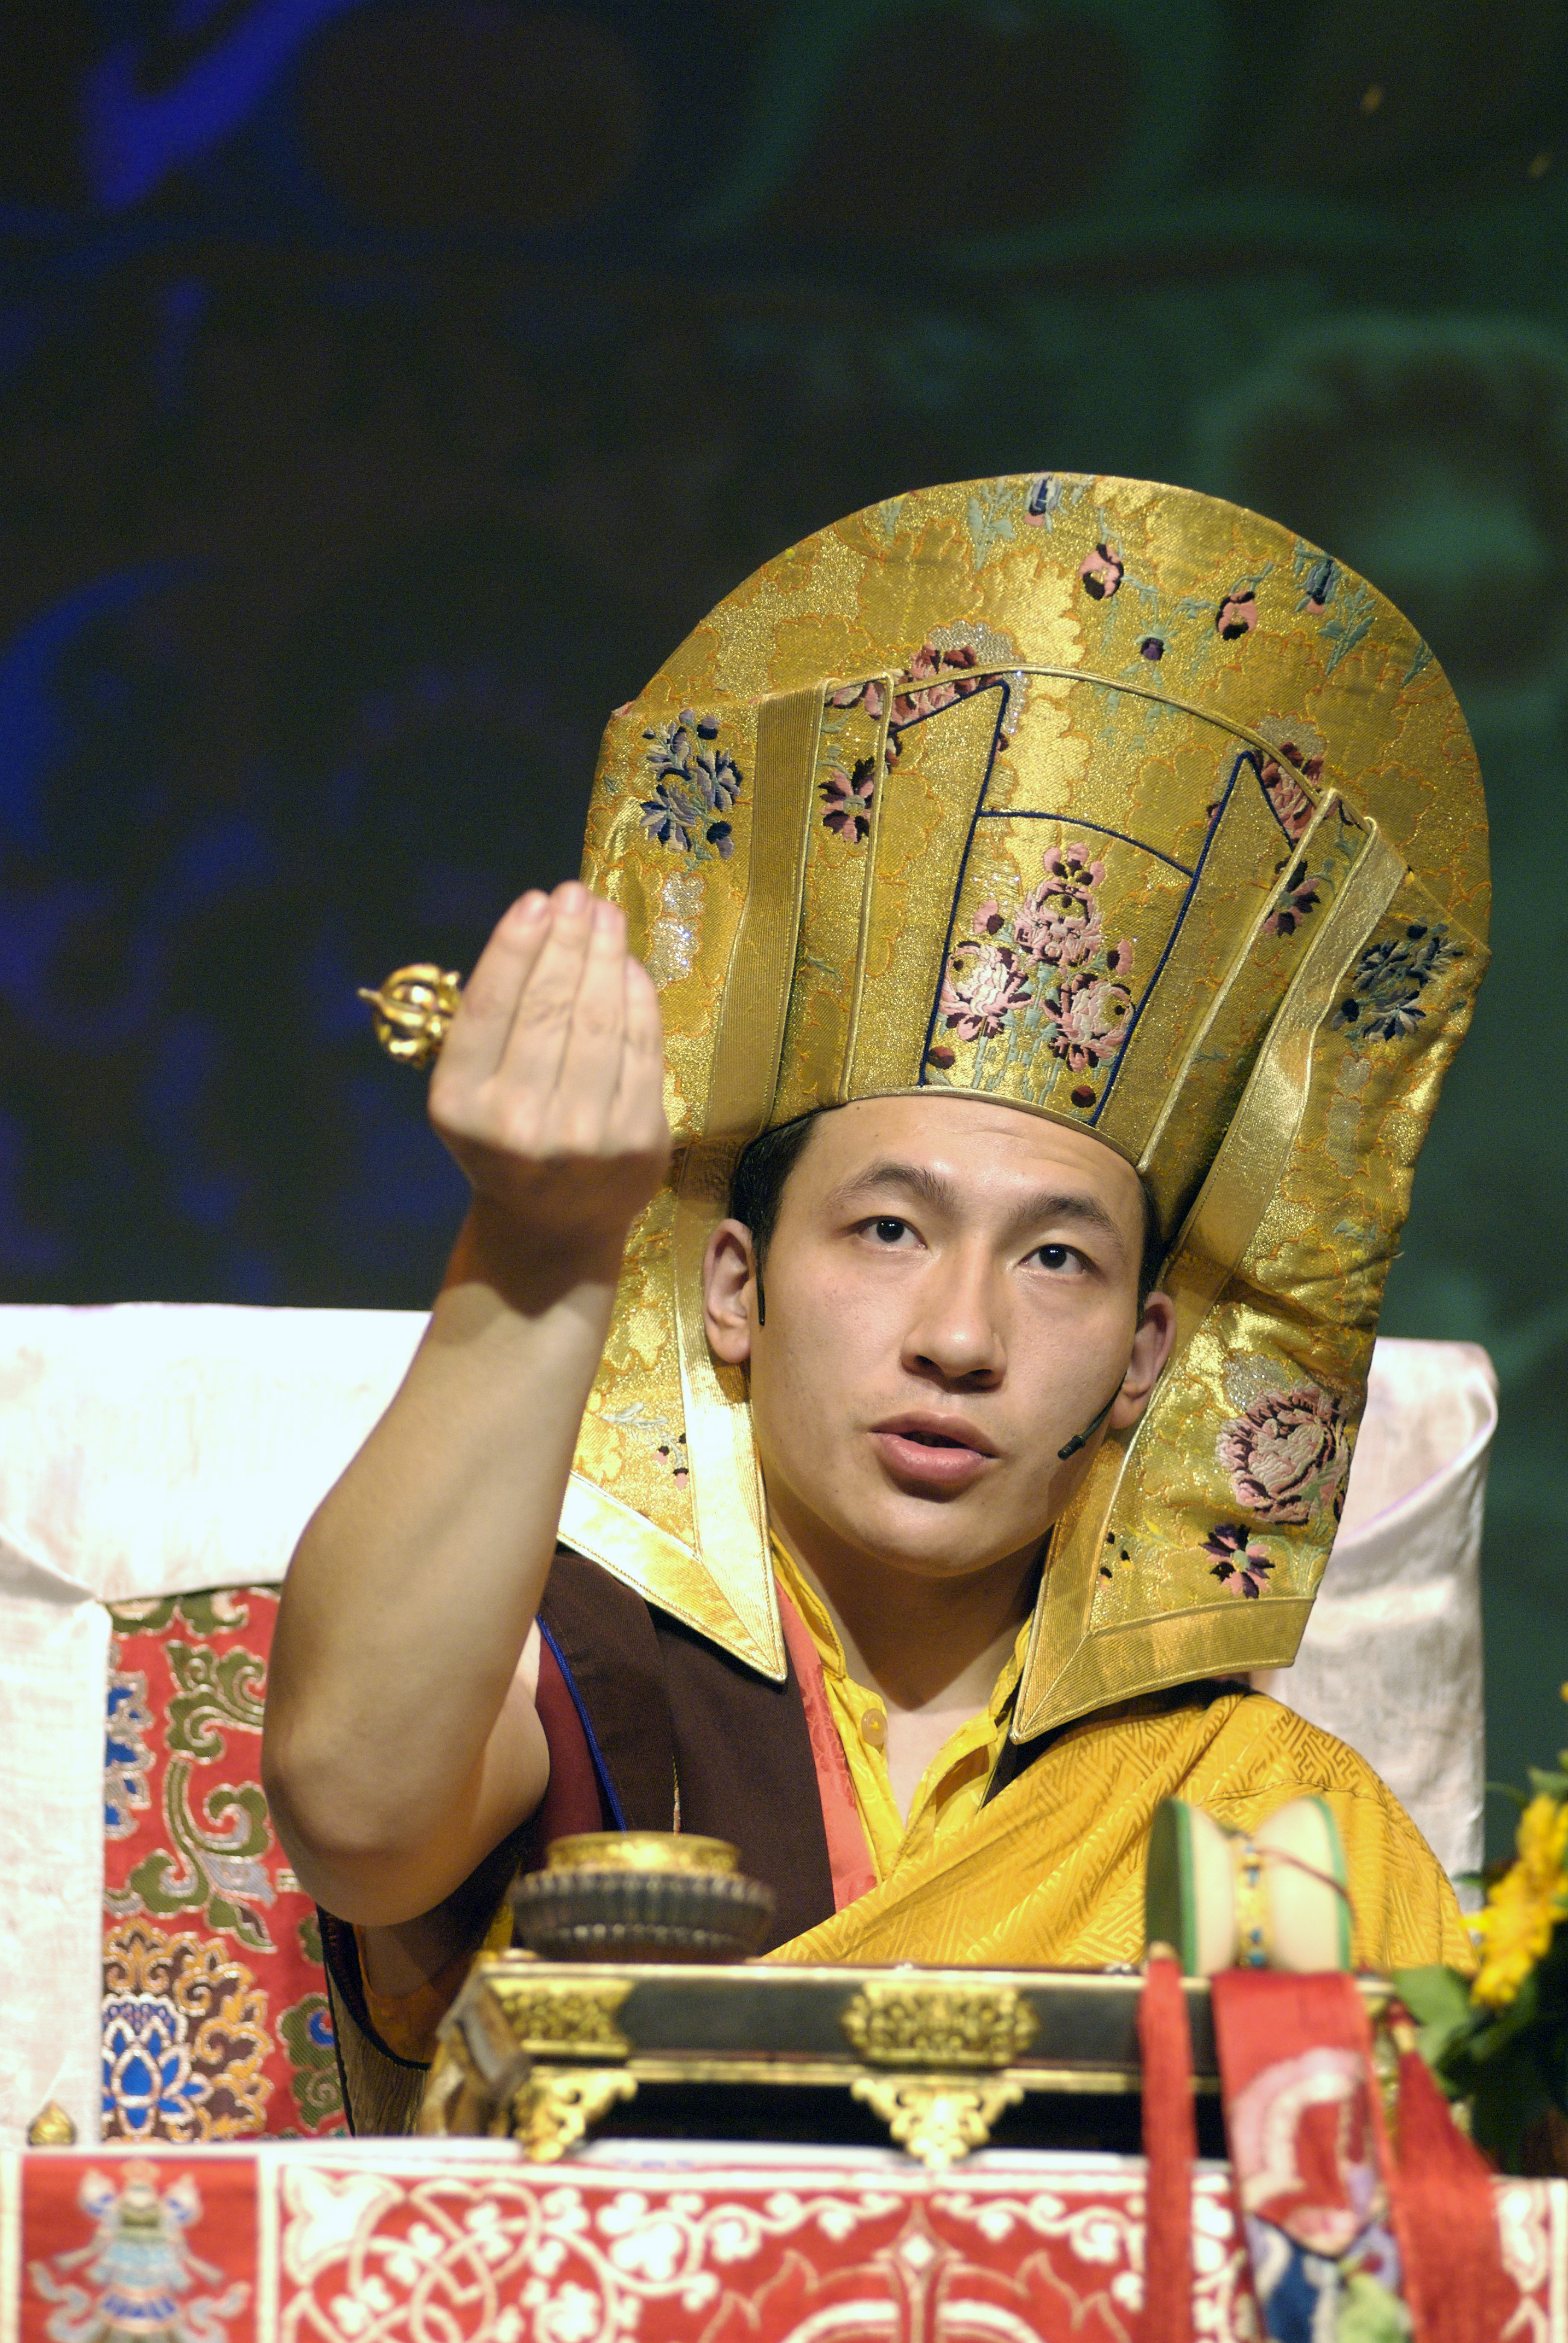 17th Karmapa in Zurich in 2007